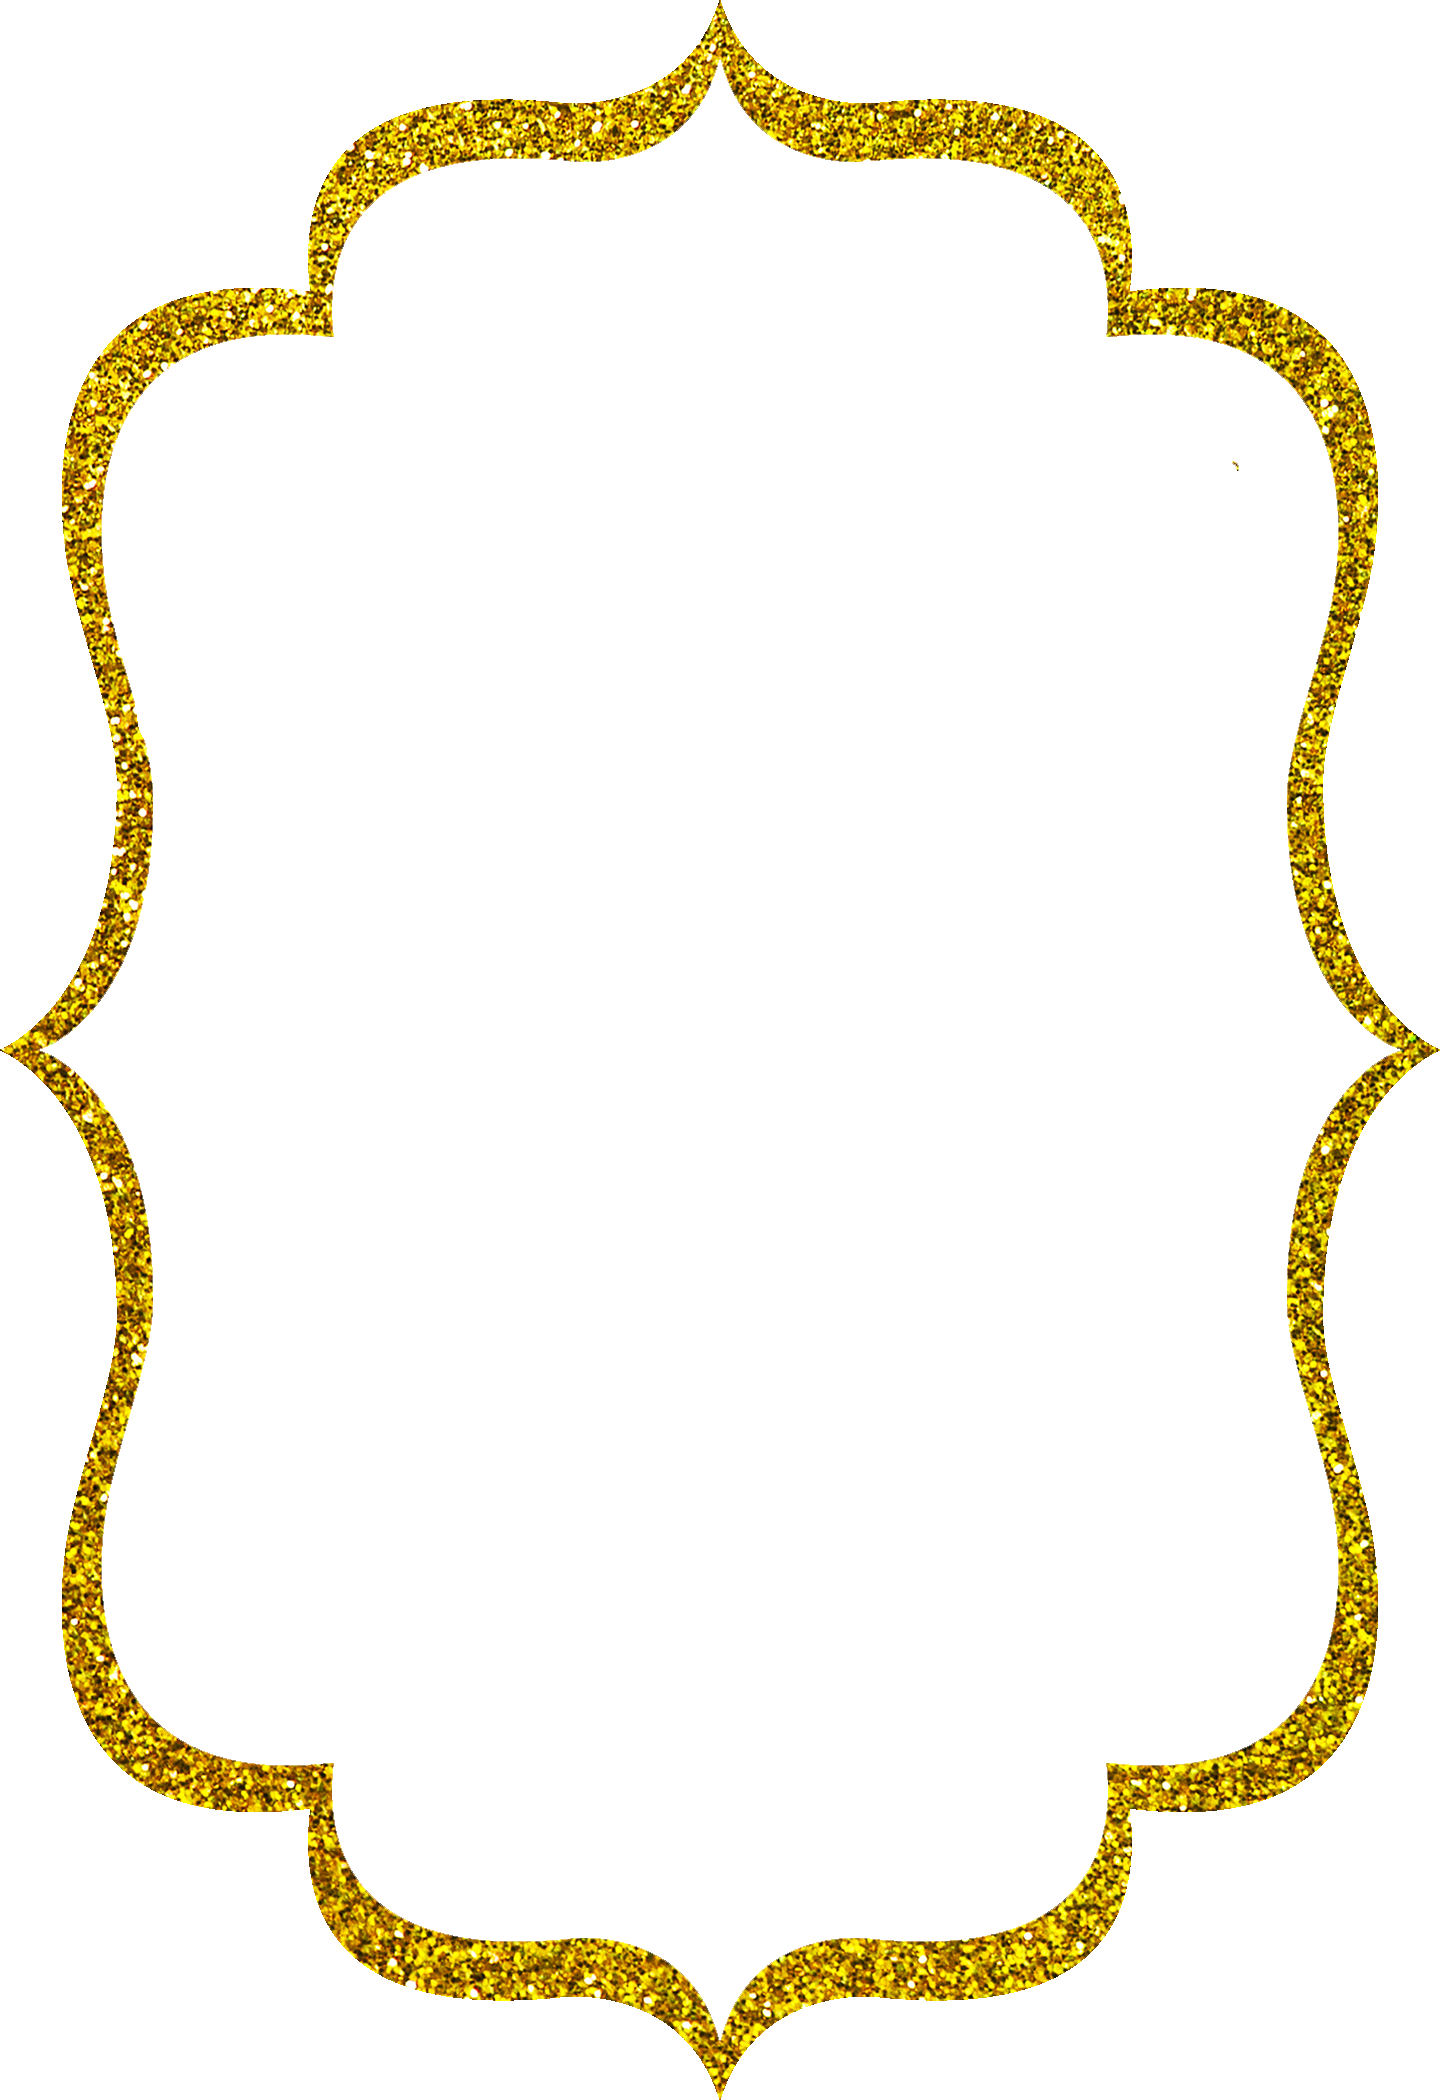 Index of cdn glittergoldborderframepng. Gold glitter frame png